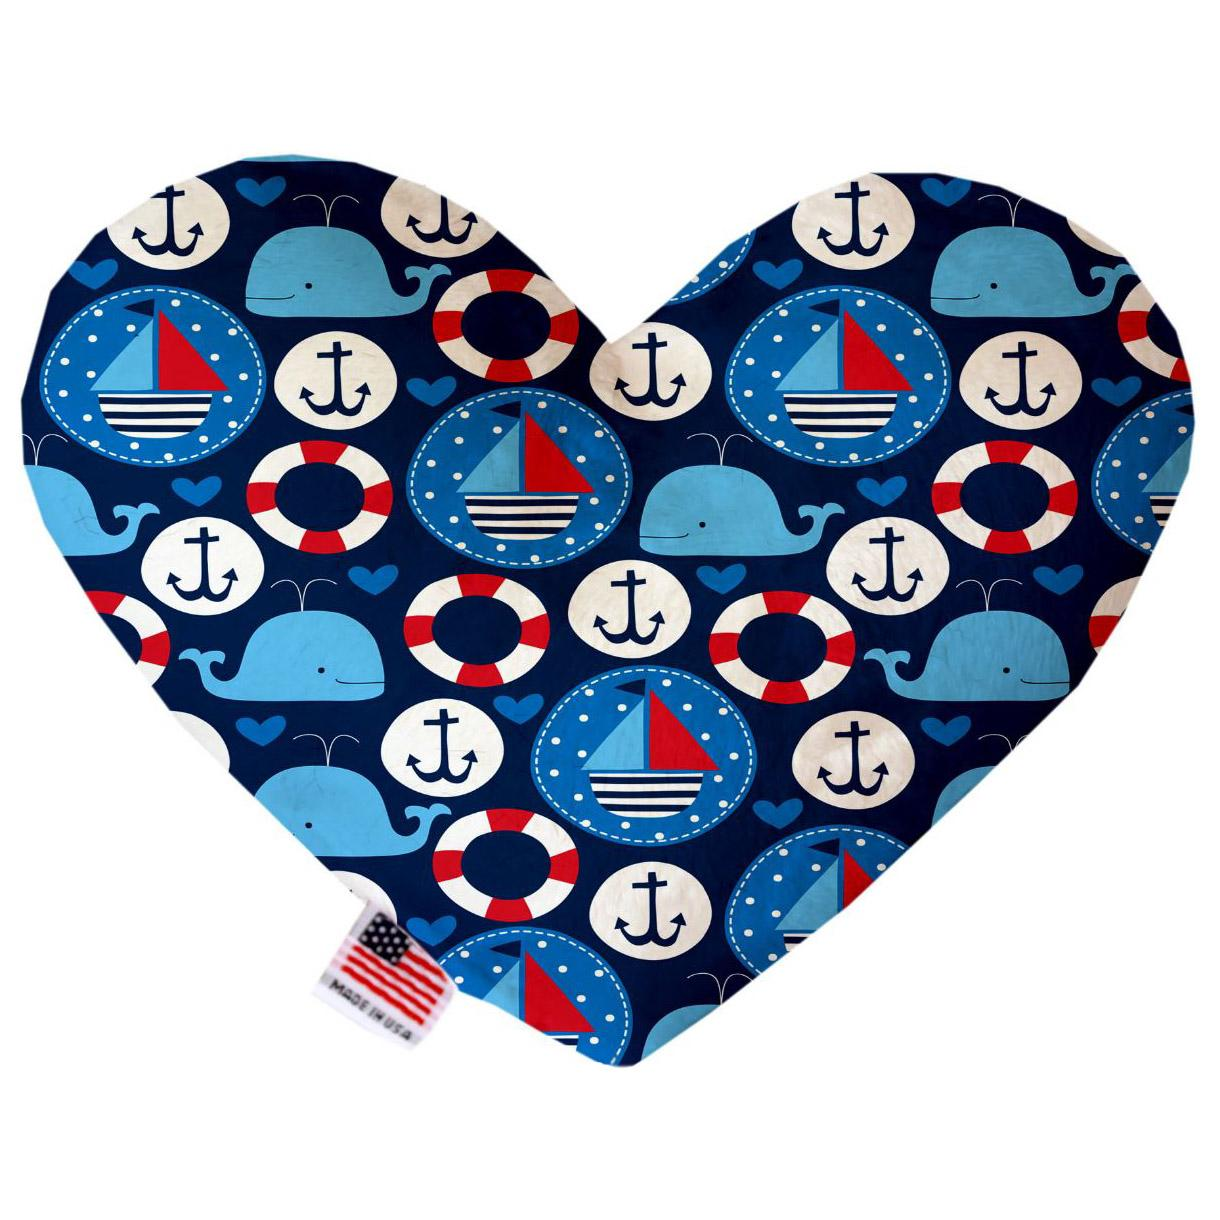 Heart Dog Toy - Anchors Away